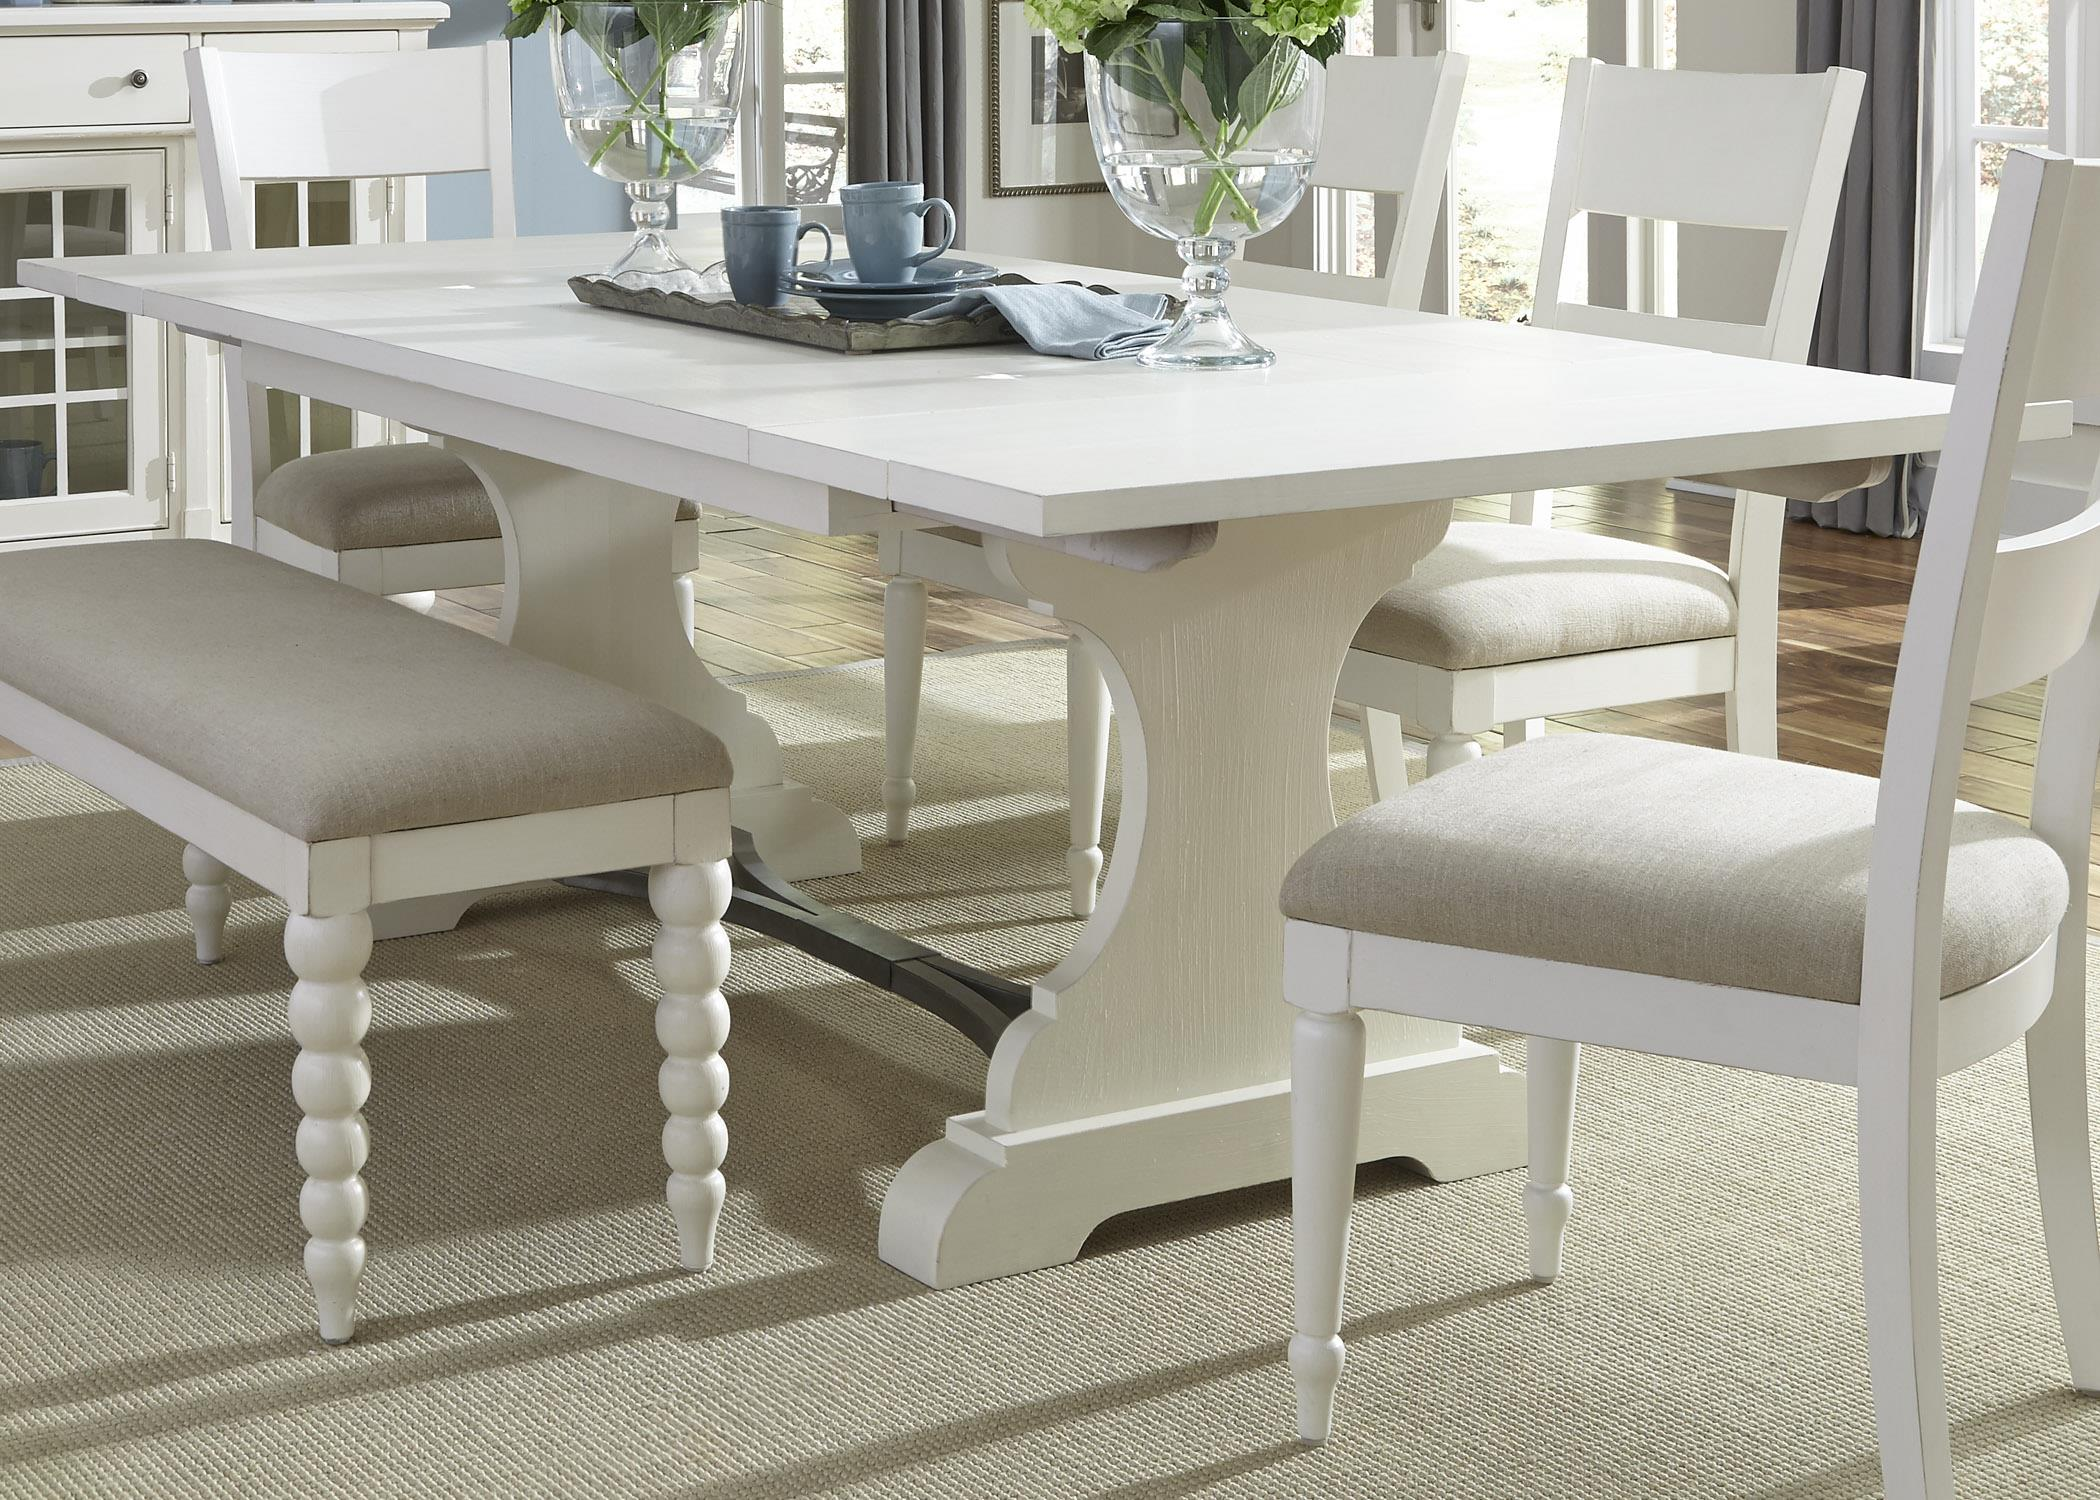 Liberty Furniture Harbor View Trestle Dining Table - Item Number: 631-T4294